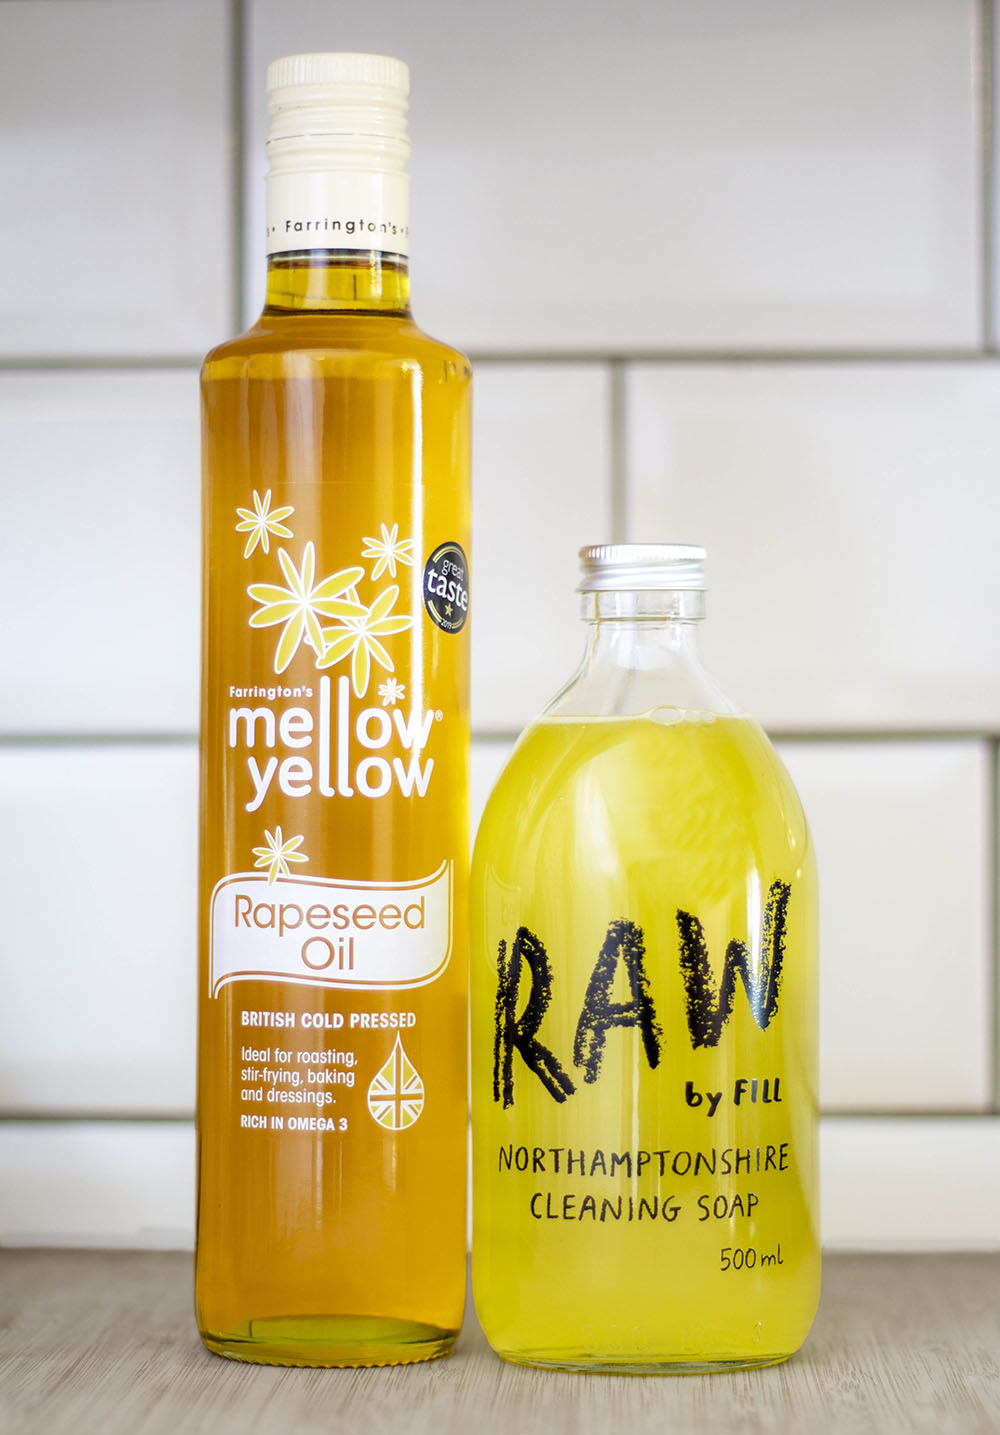 mellow yellow rapeseed oil and northamptonshire cleaning soap